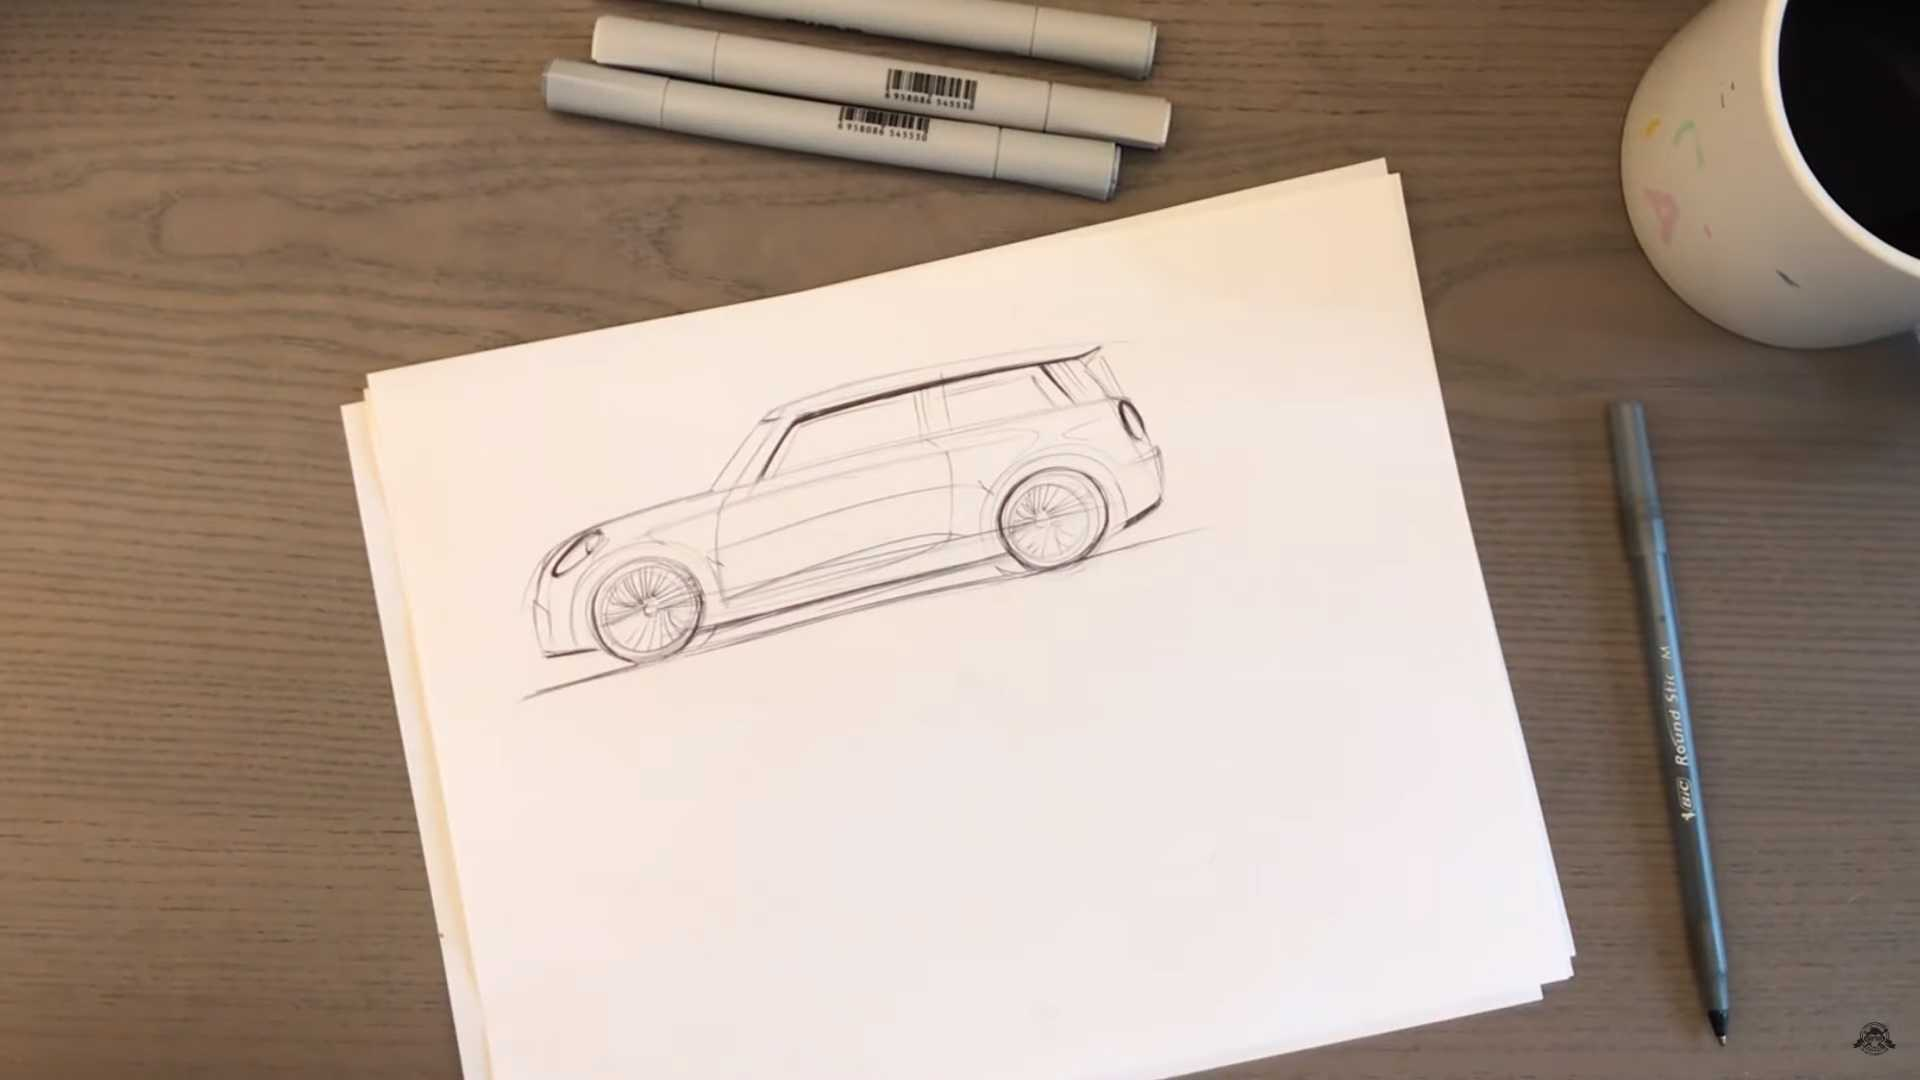 Mini Gets Mid-Engine Supercar Makeover In Amazing Rendering